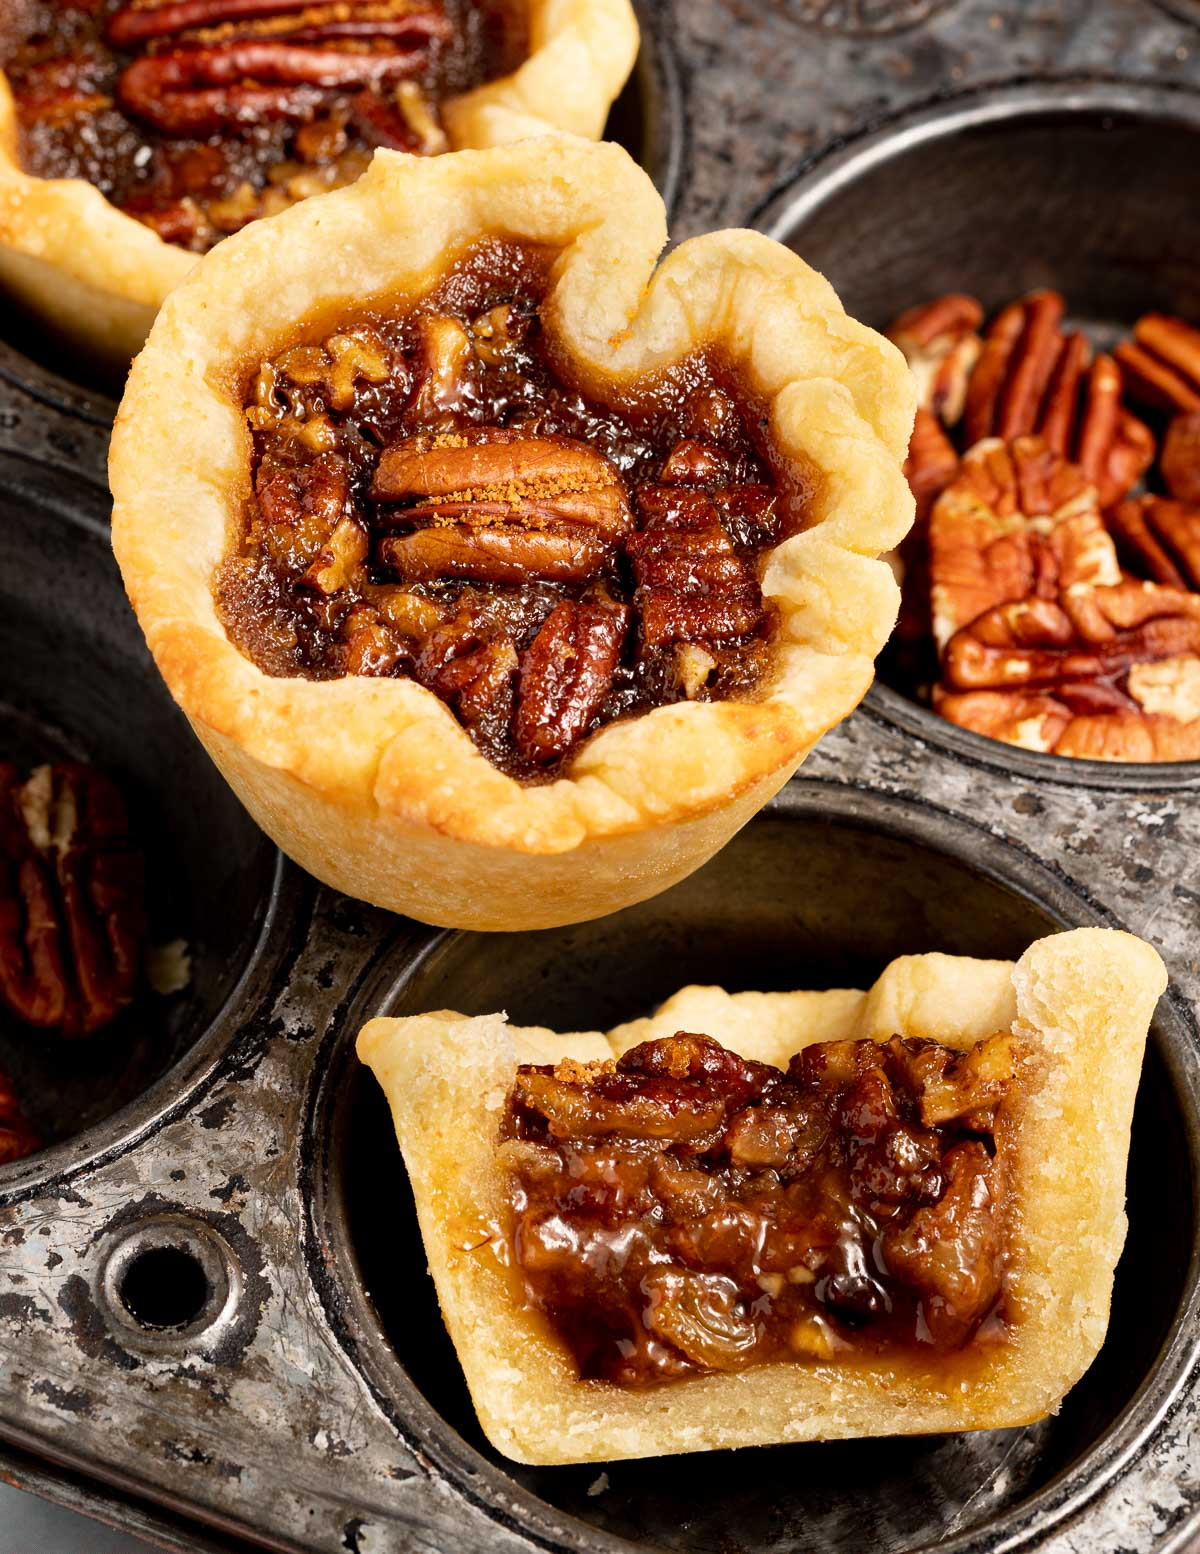 a butter tart and half a butter tart showing the filling